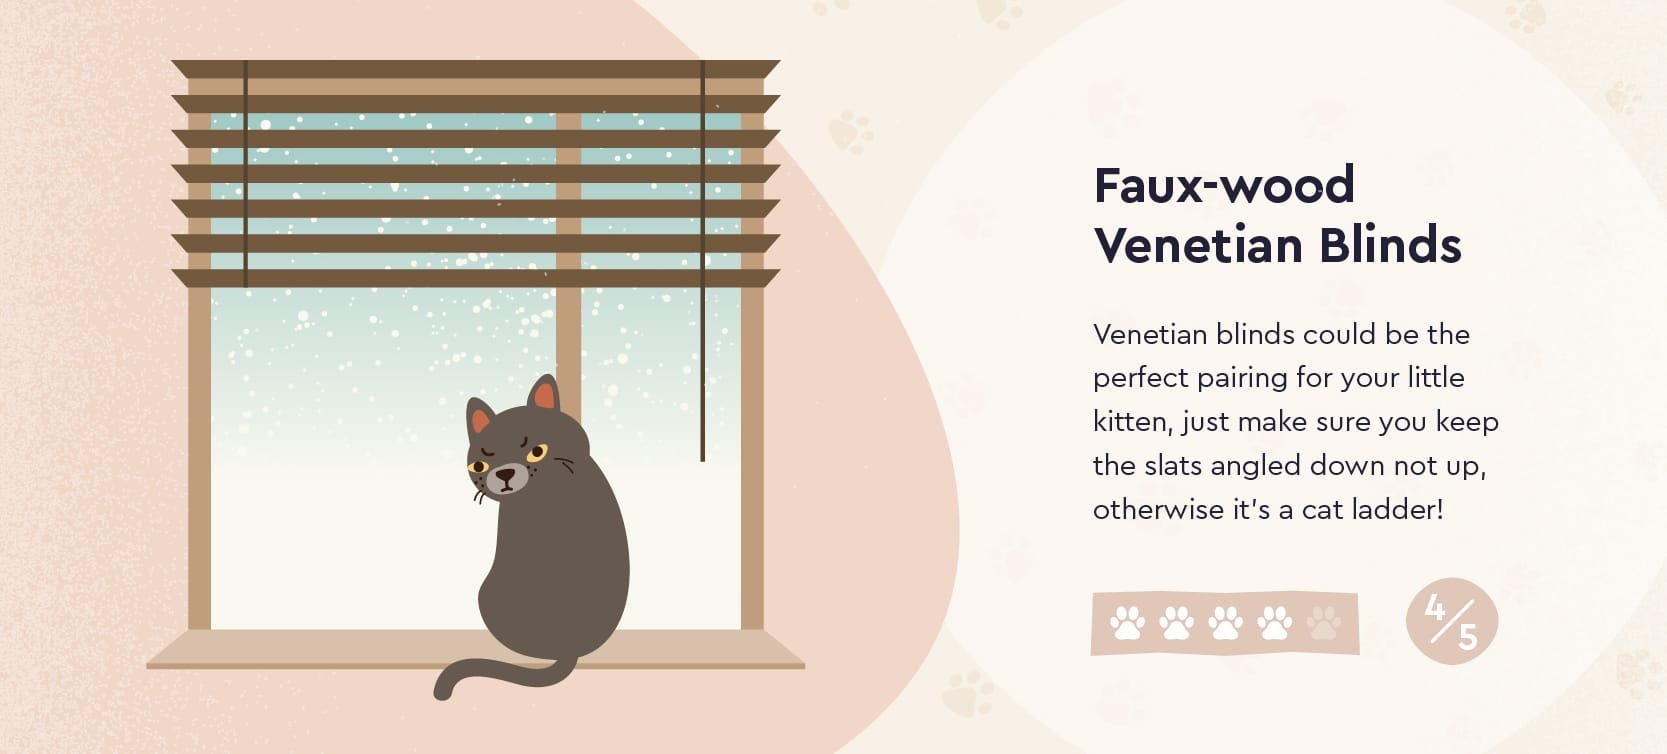 Faux Wood Venetian Blinds and Cats